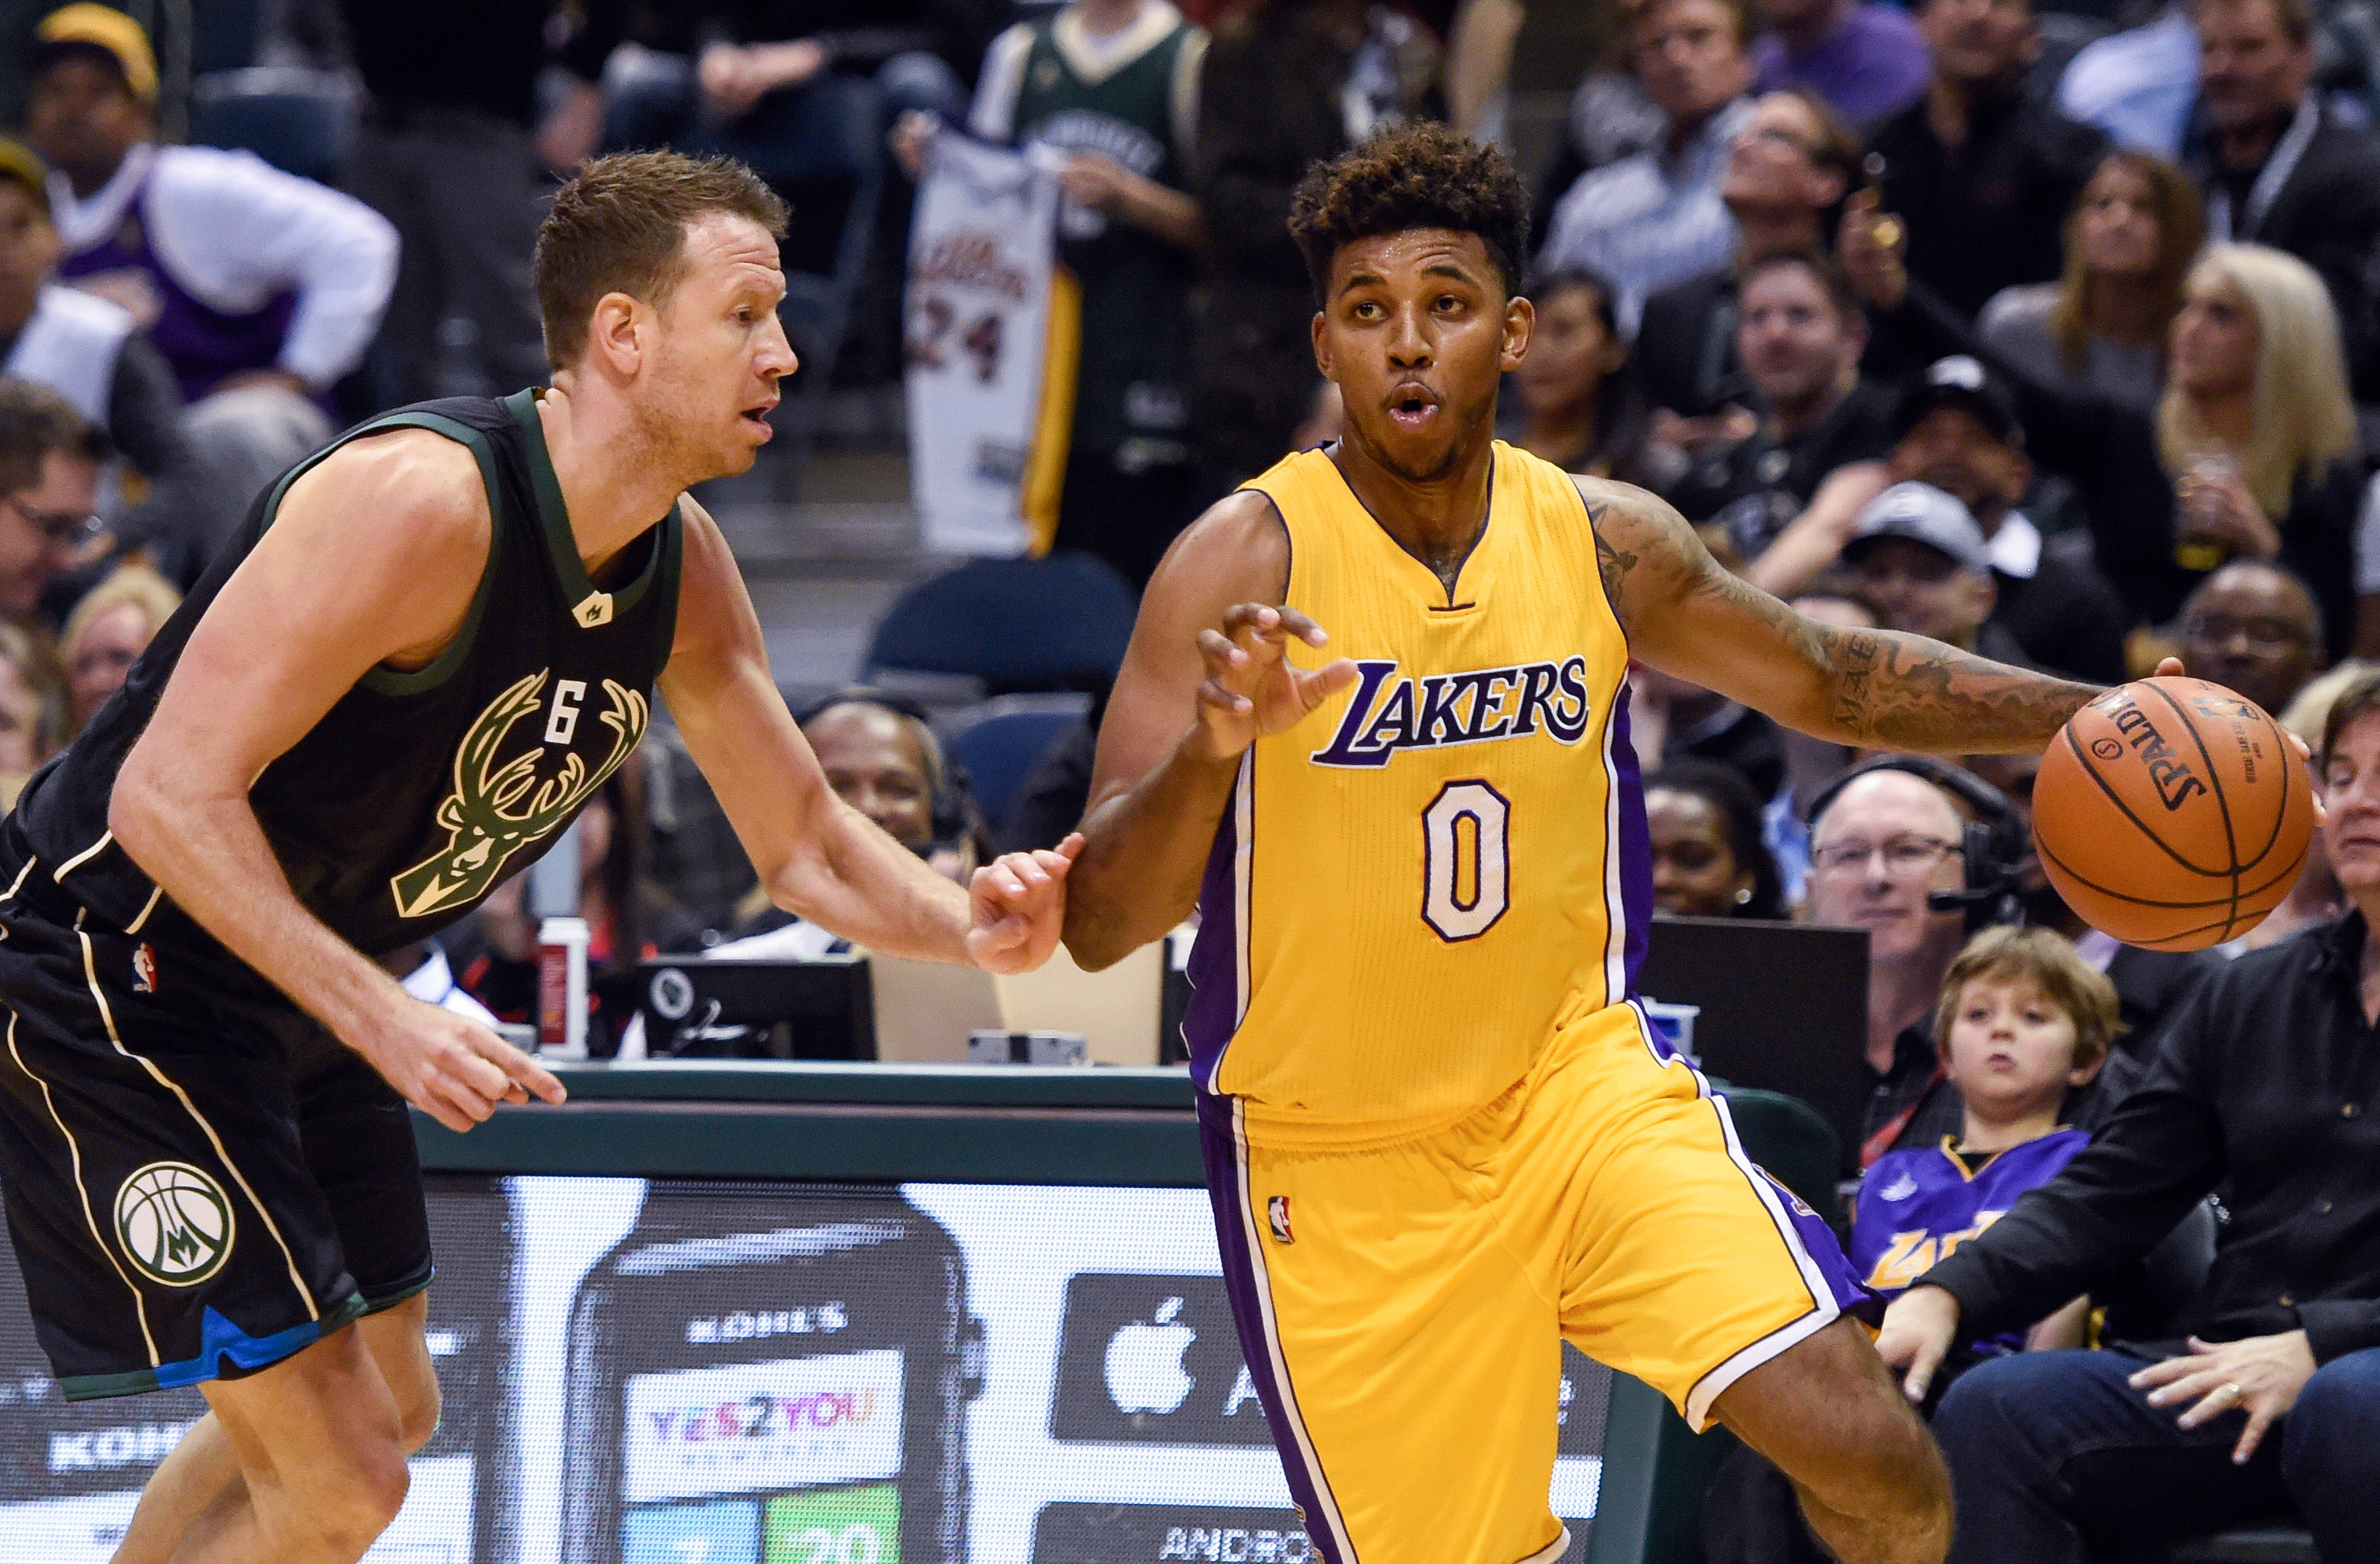 Feb 22, 2016; Milwaukee, WI, USA; Milwaukee Bucks forward Steve Novak (6) guards Los Angeles Lakers forward Nick Young (0) in the fourth quarter at BMO Harris Bradley Center. The Bucks beat the Lakers 108-101. Mandatory Credit: Benny Sieu-USA TODAY Sports